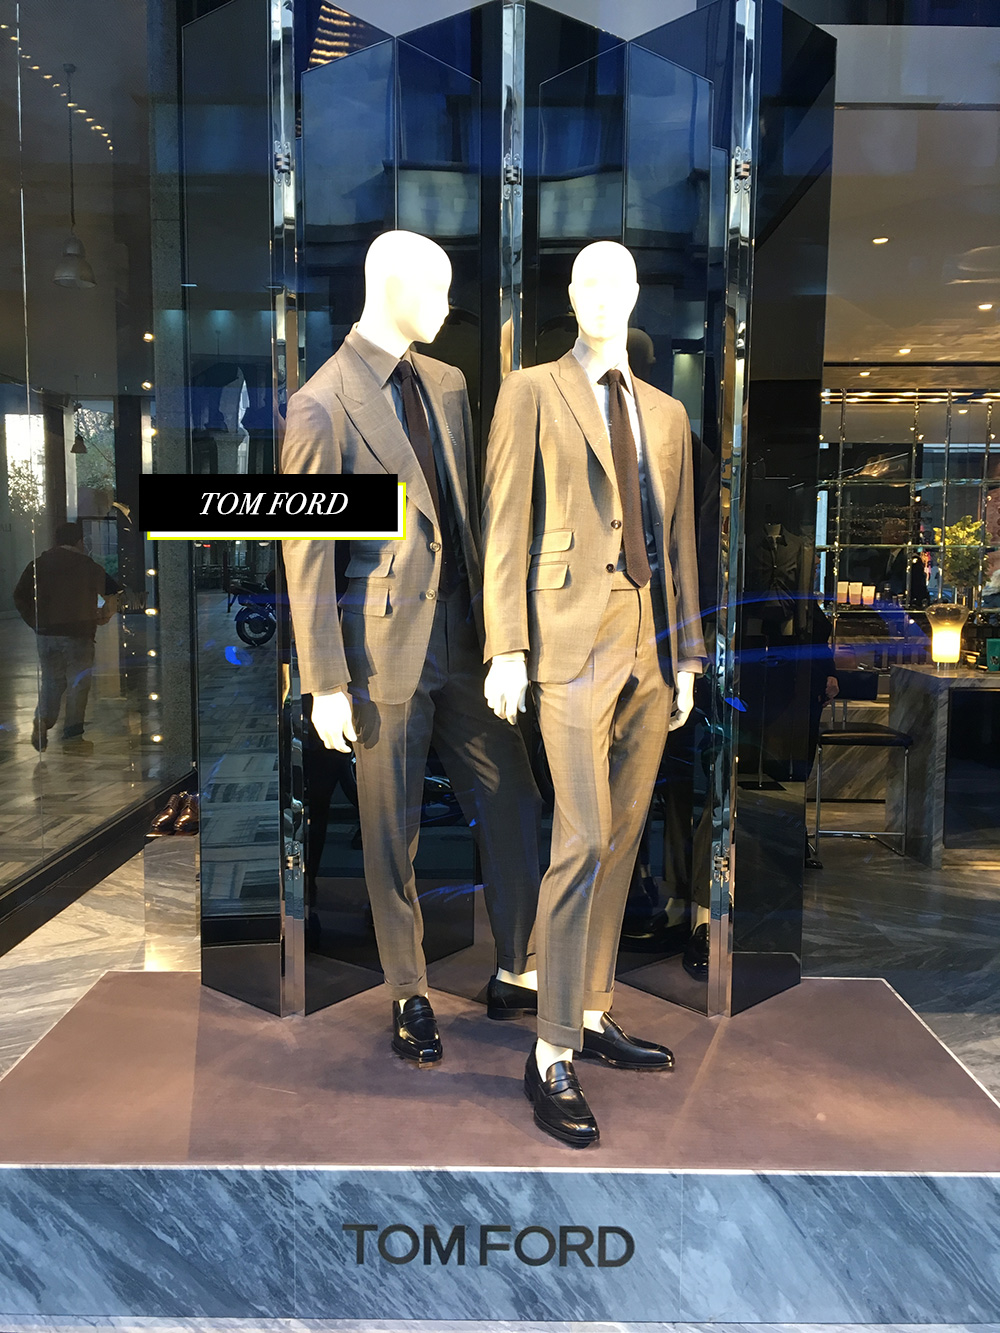 Tom Ford Quadrilatero Della Moda